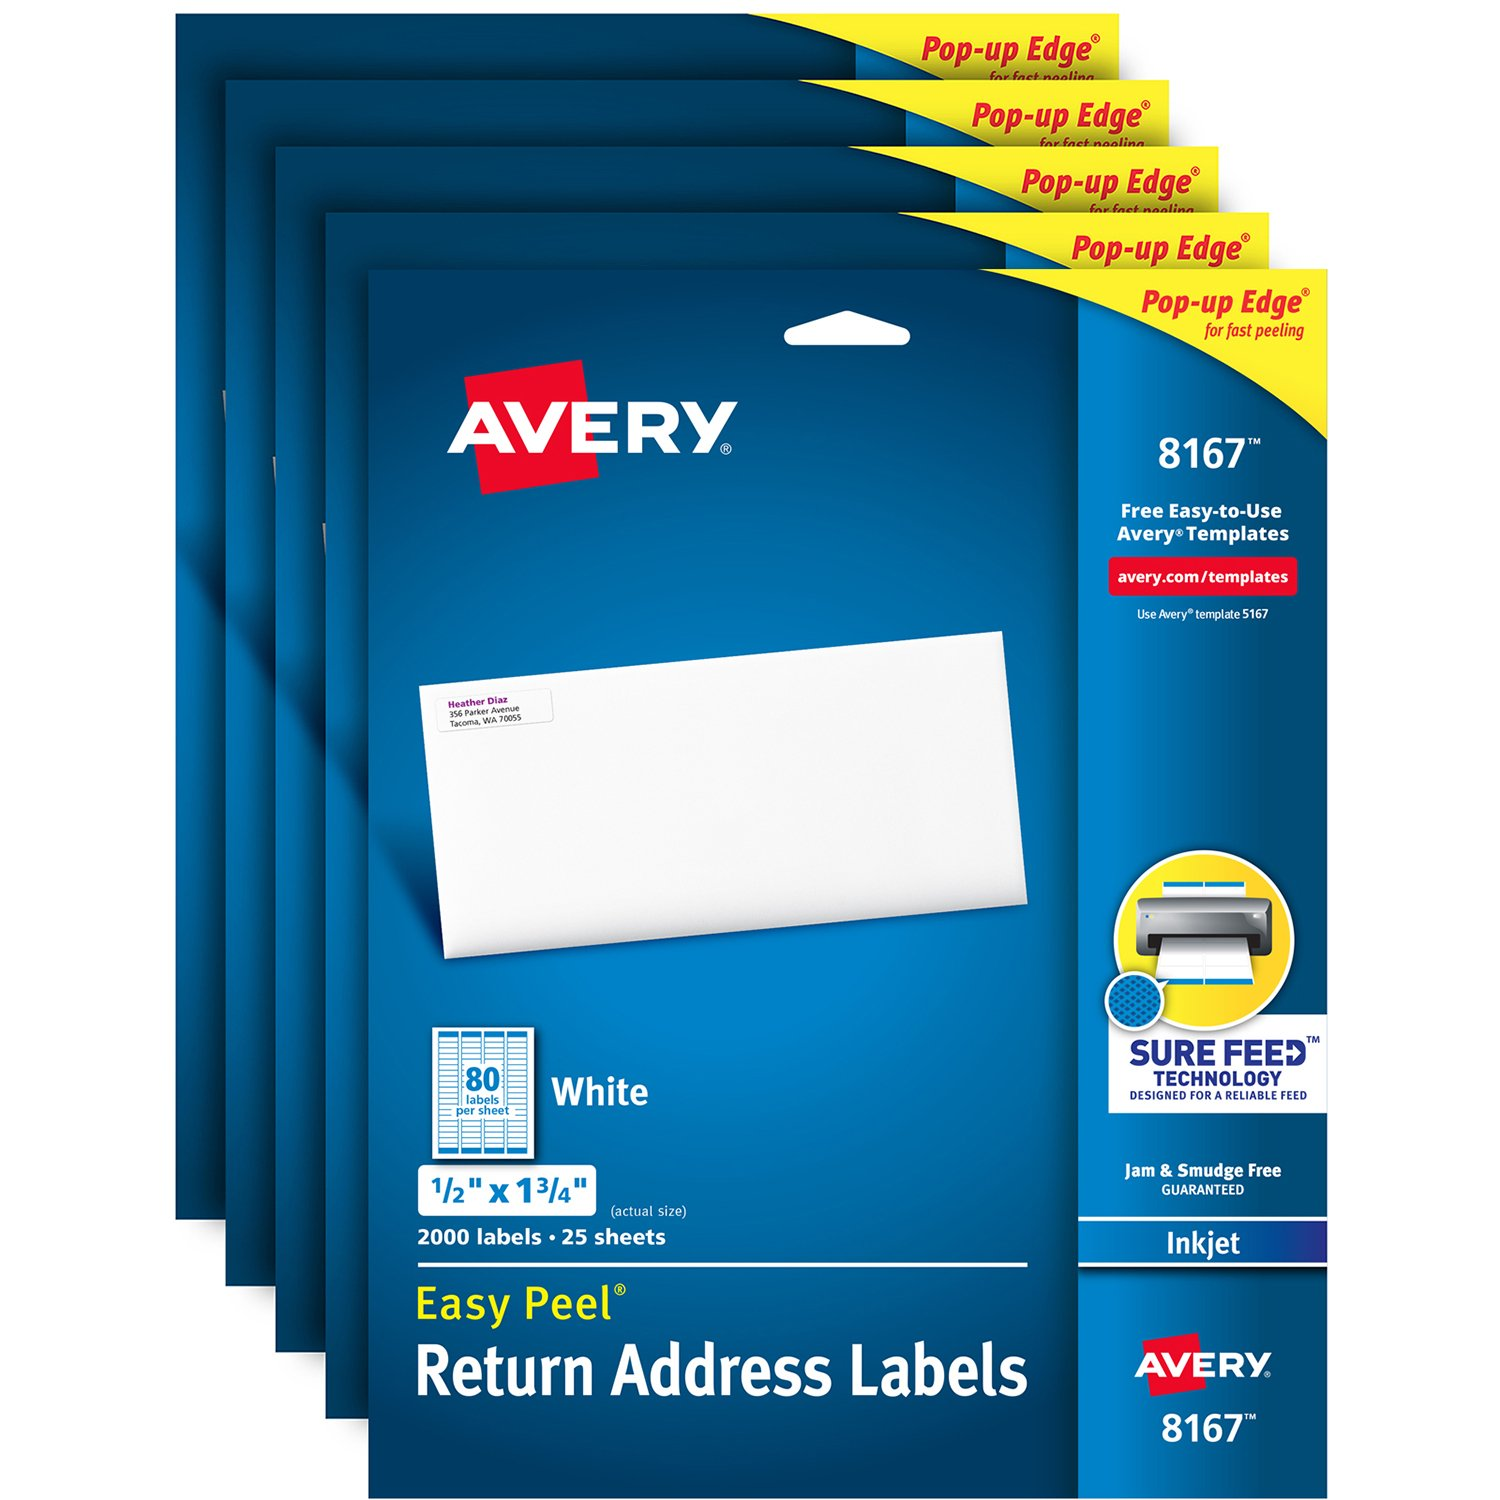 Avery Address Labels with Sure Feed for Inkjet Printers, 0.5'' x 1.75'', 10,000 Labels, Permanent Adhesive (5 Pack 8167)